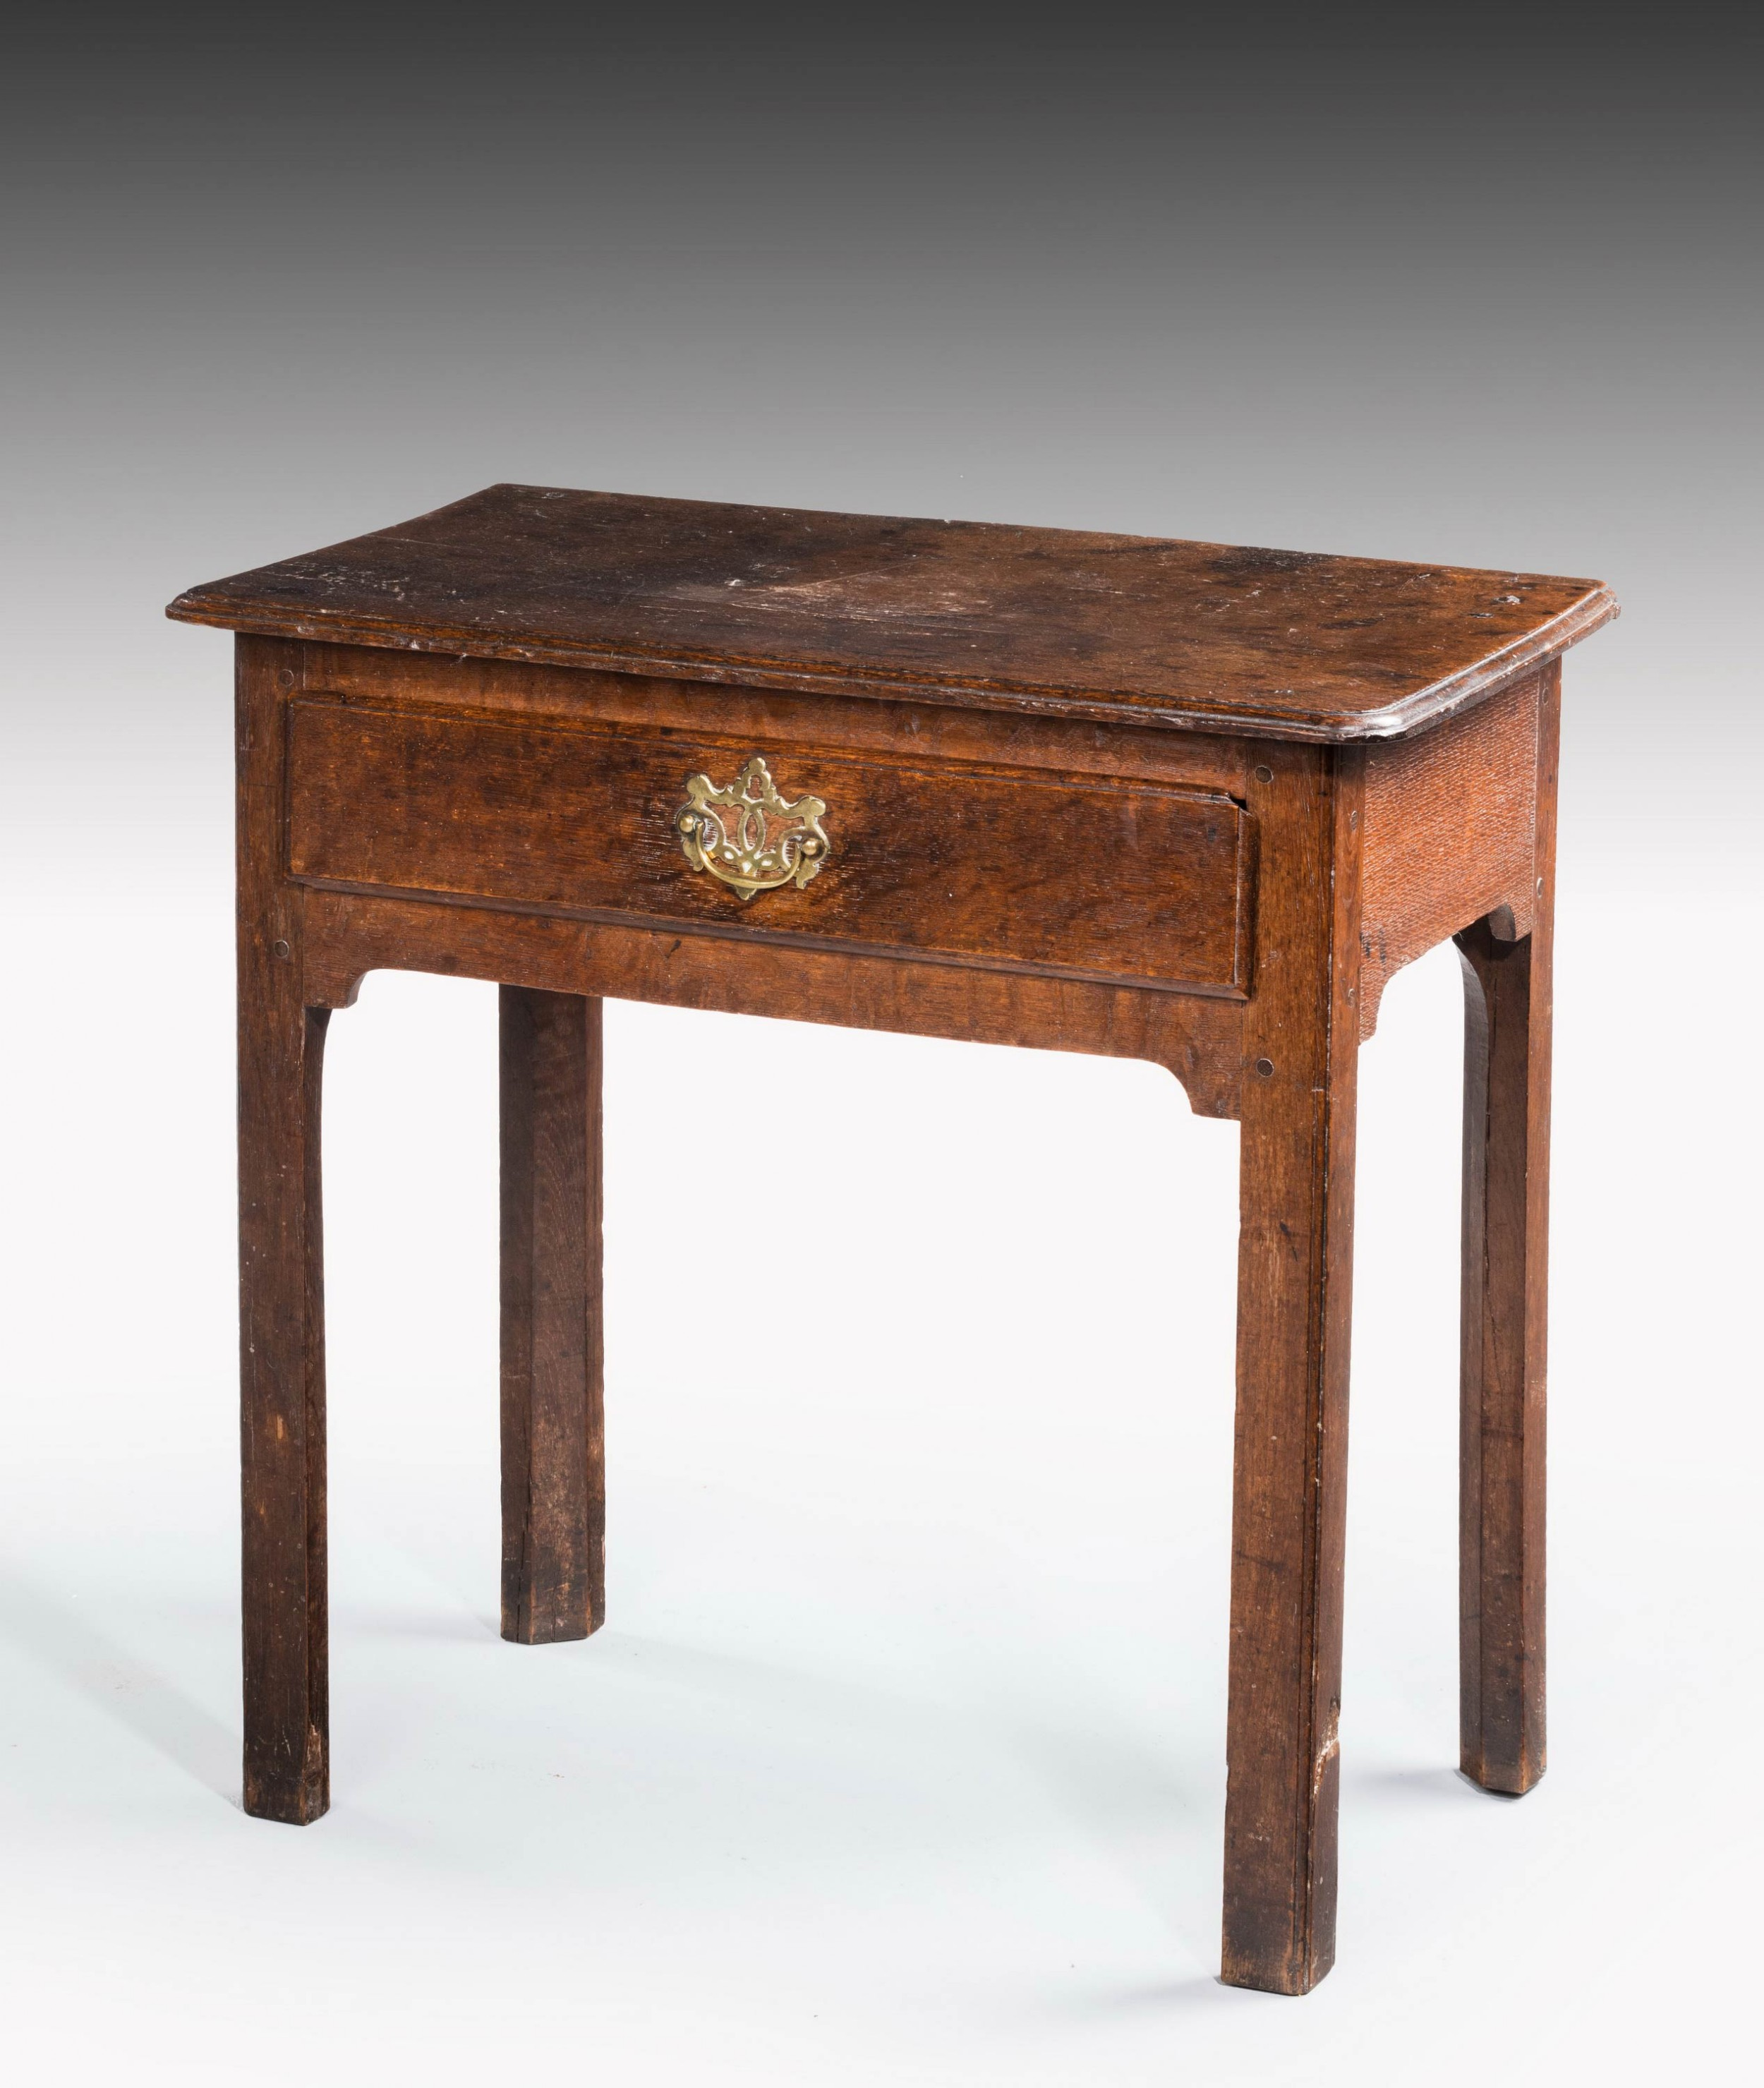 mid 18th century single drawer side table on square shaped support